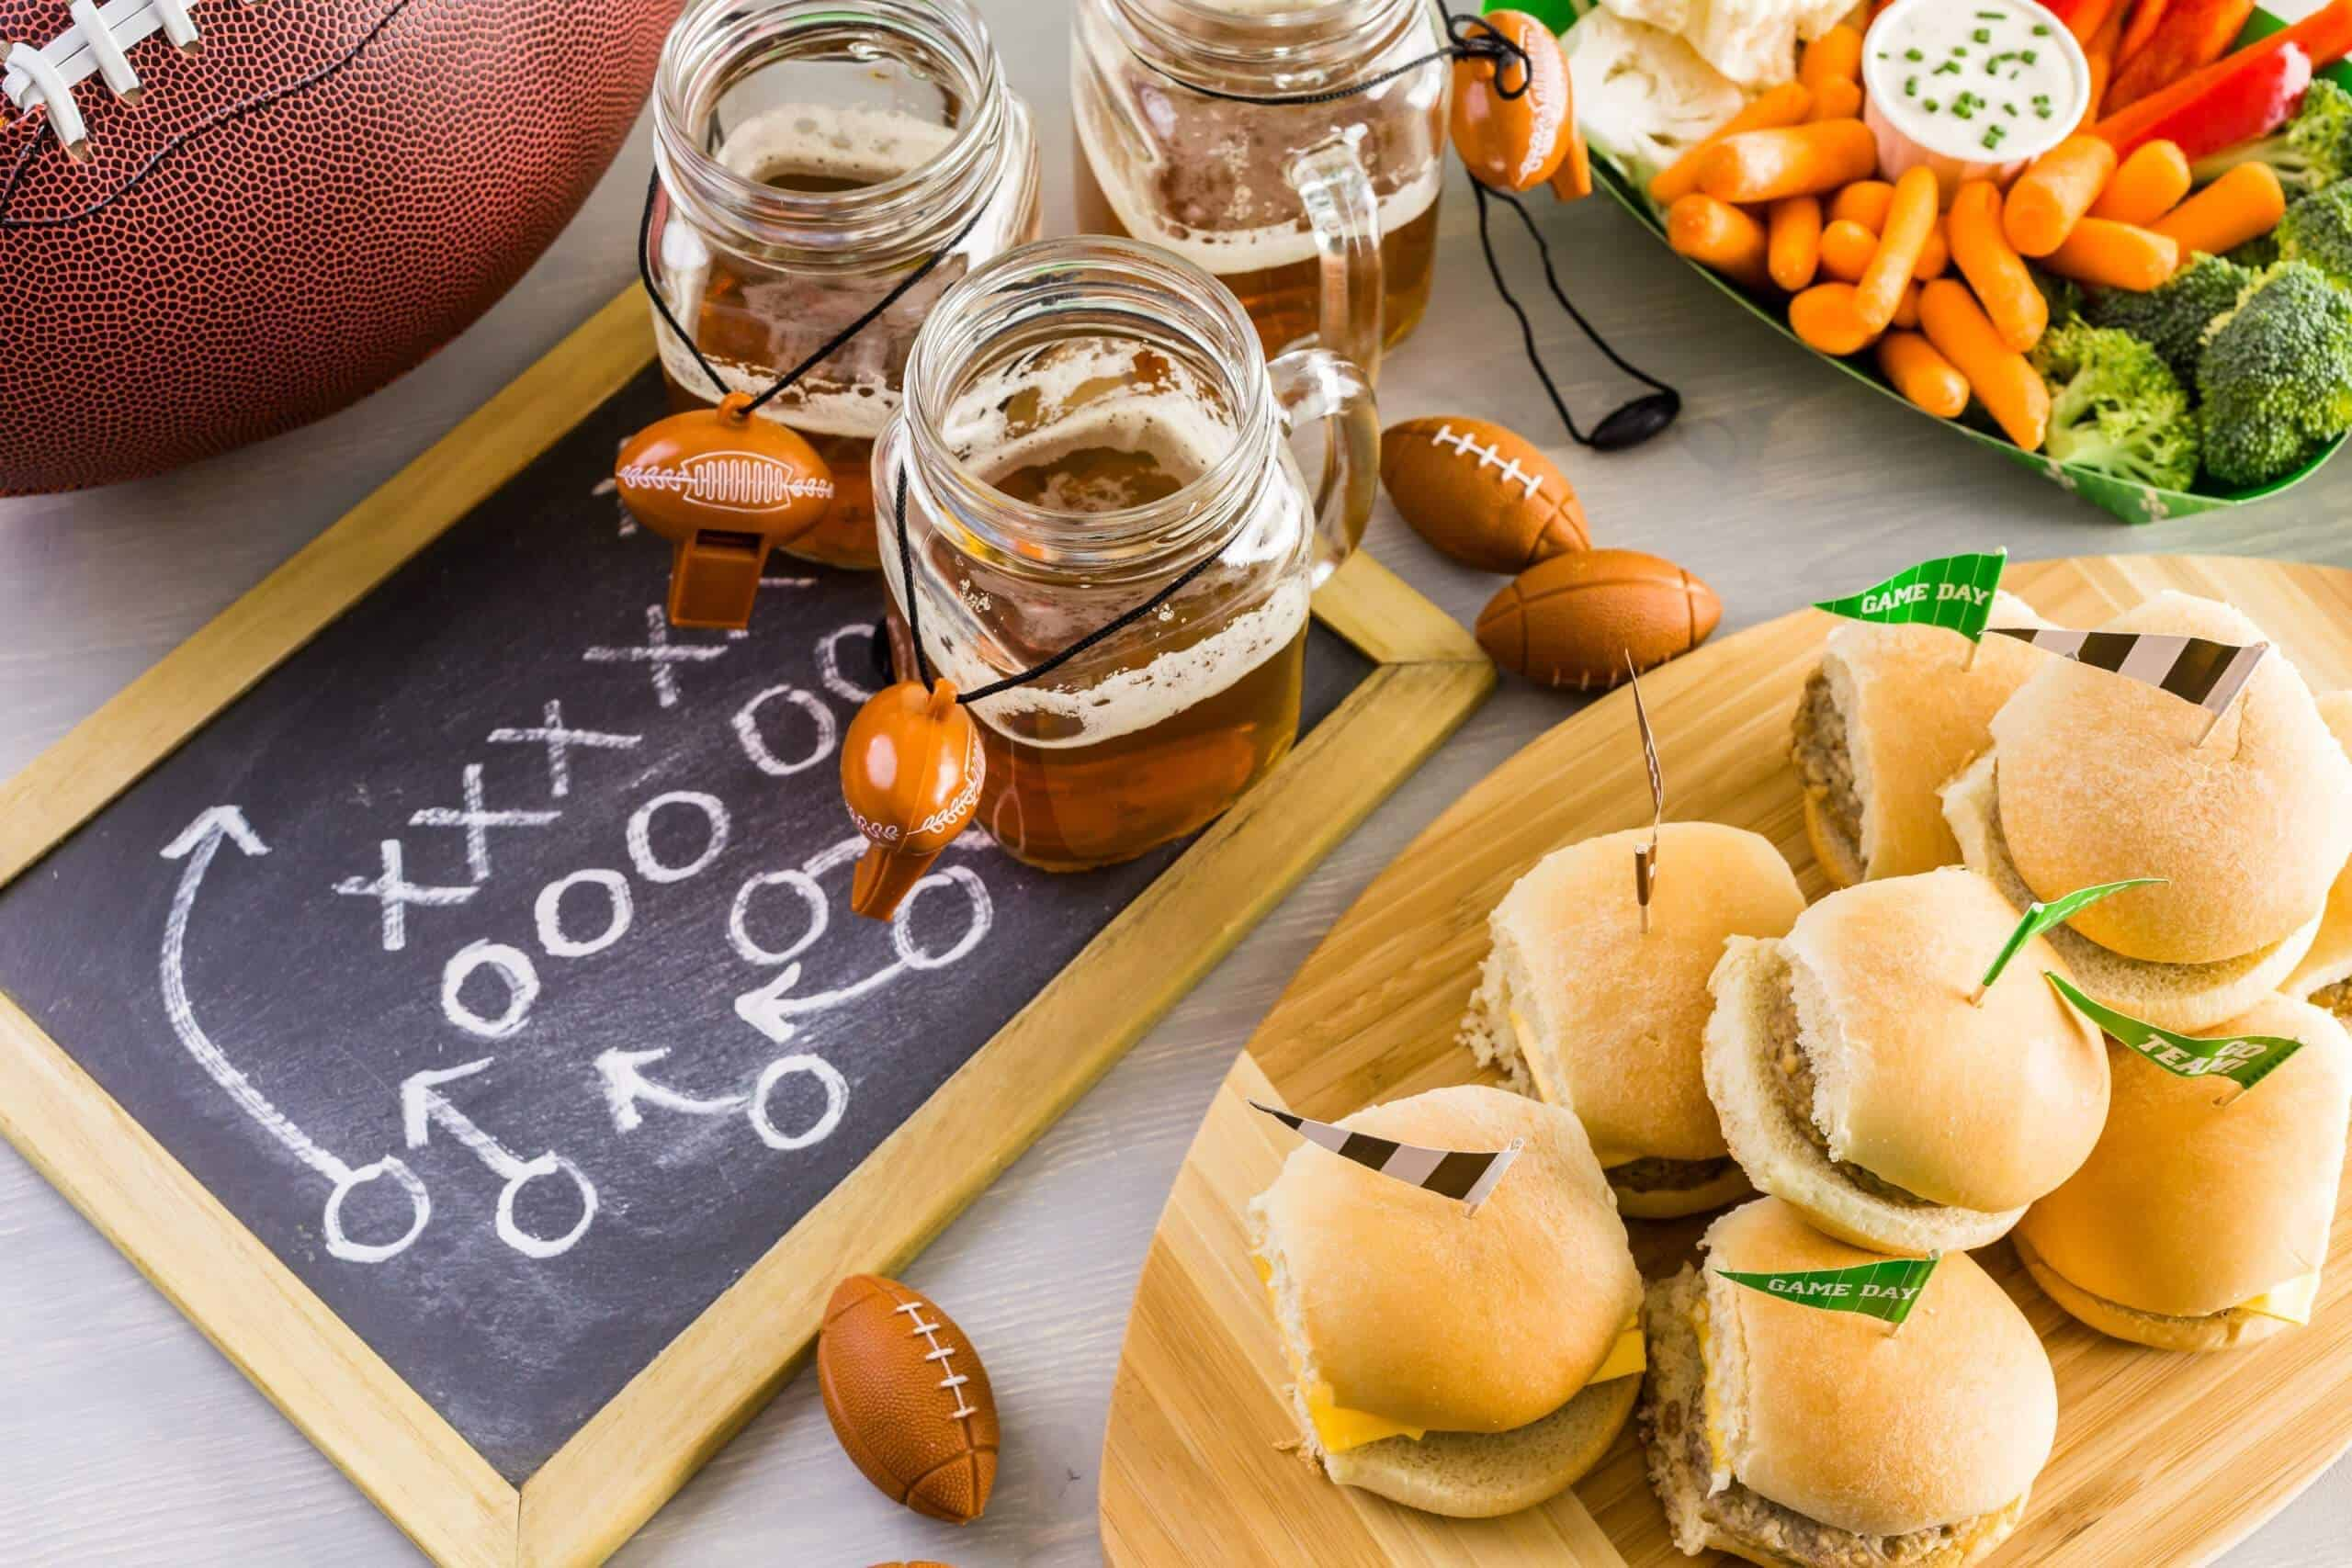 Easy recipes for tailgating or home gating for the big game.